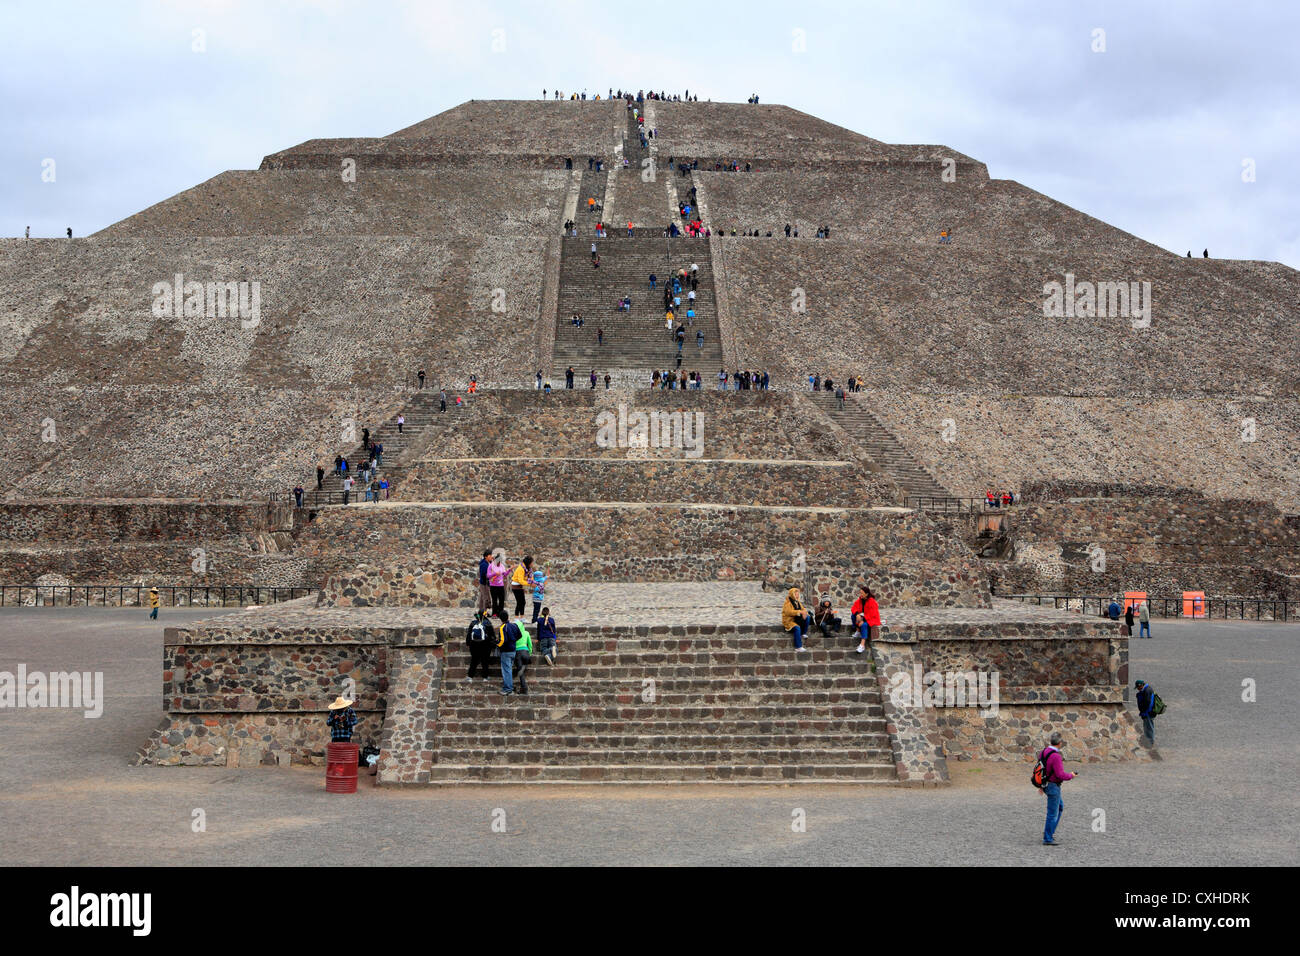 Pyramid of the Sun, Teotihuacan, near Mexico city, Mexico - Stock Image